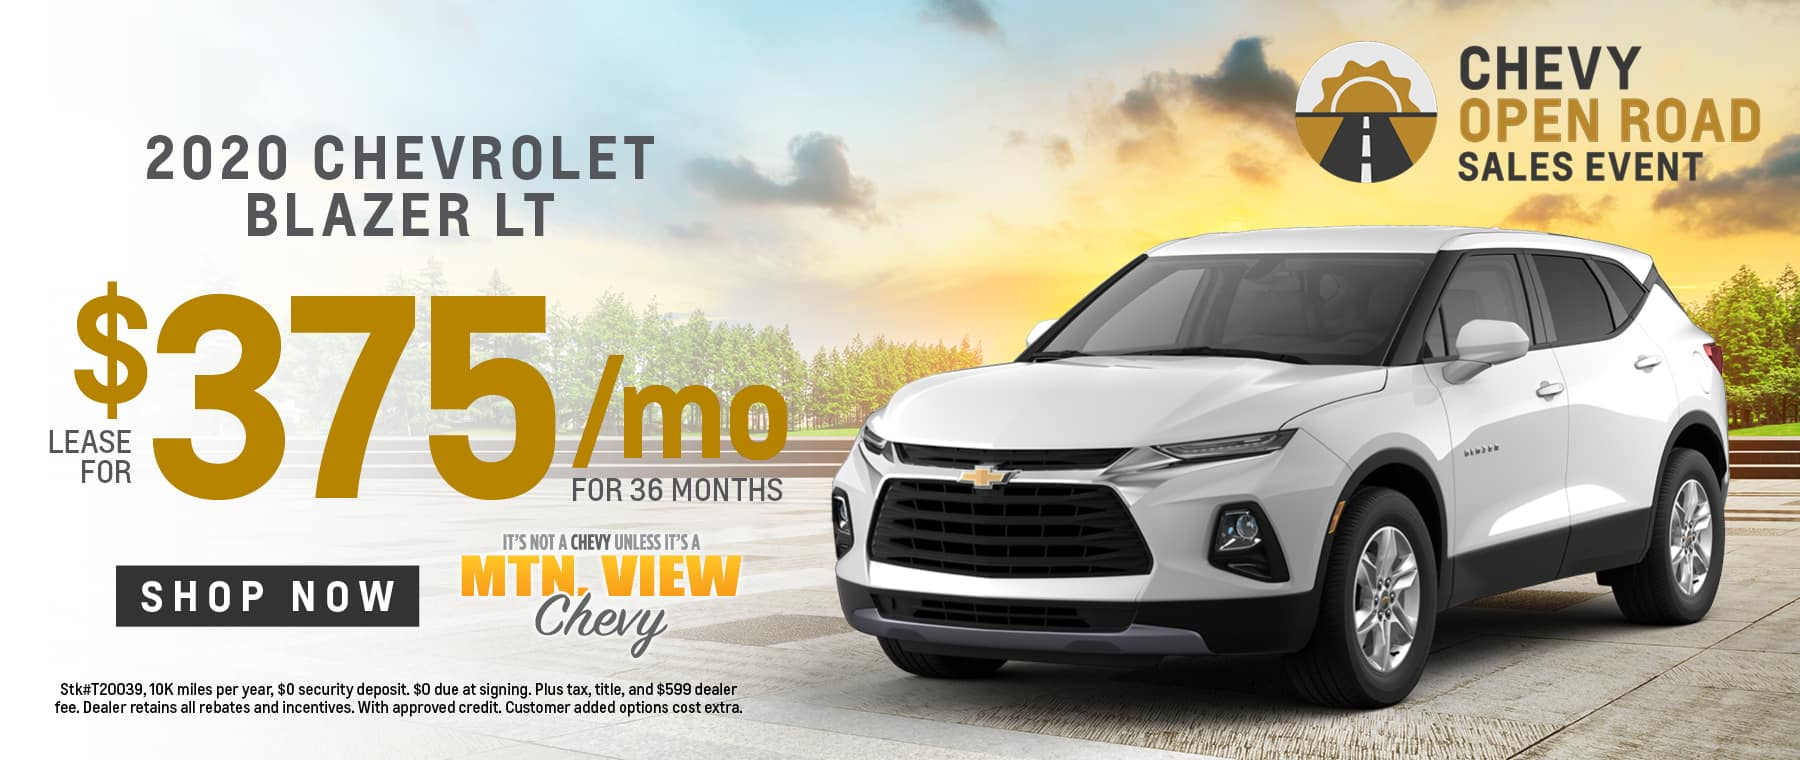 Mtn View Chevrolet Dealership In Chattanooga Tn